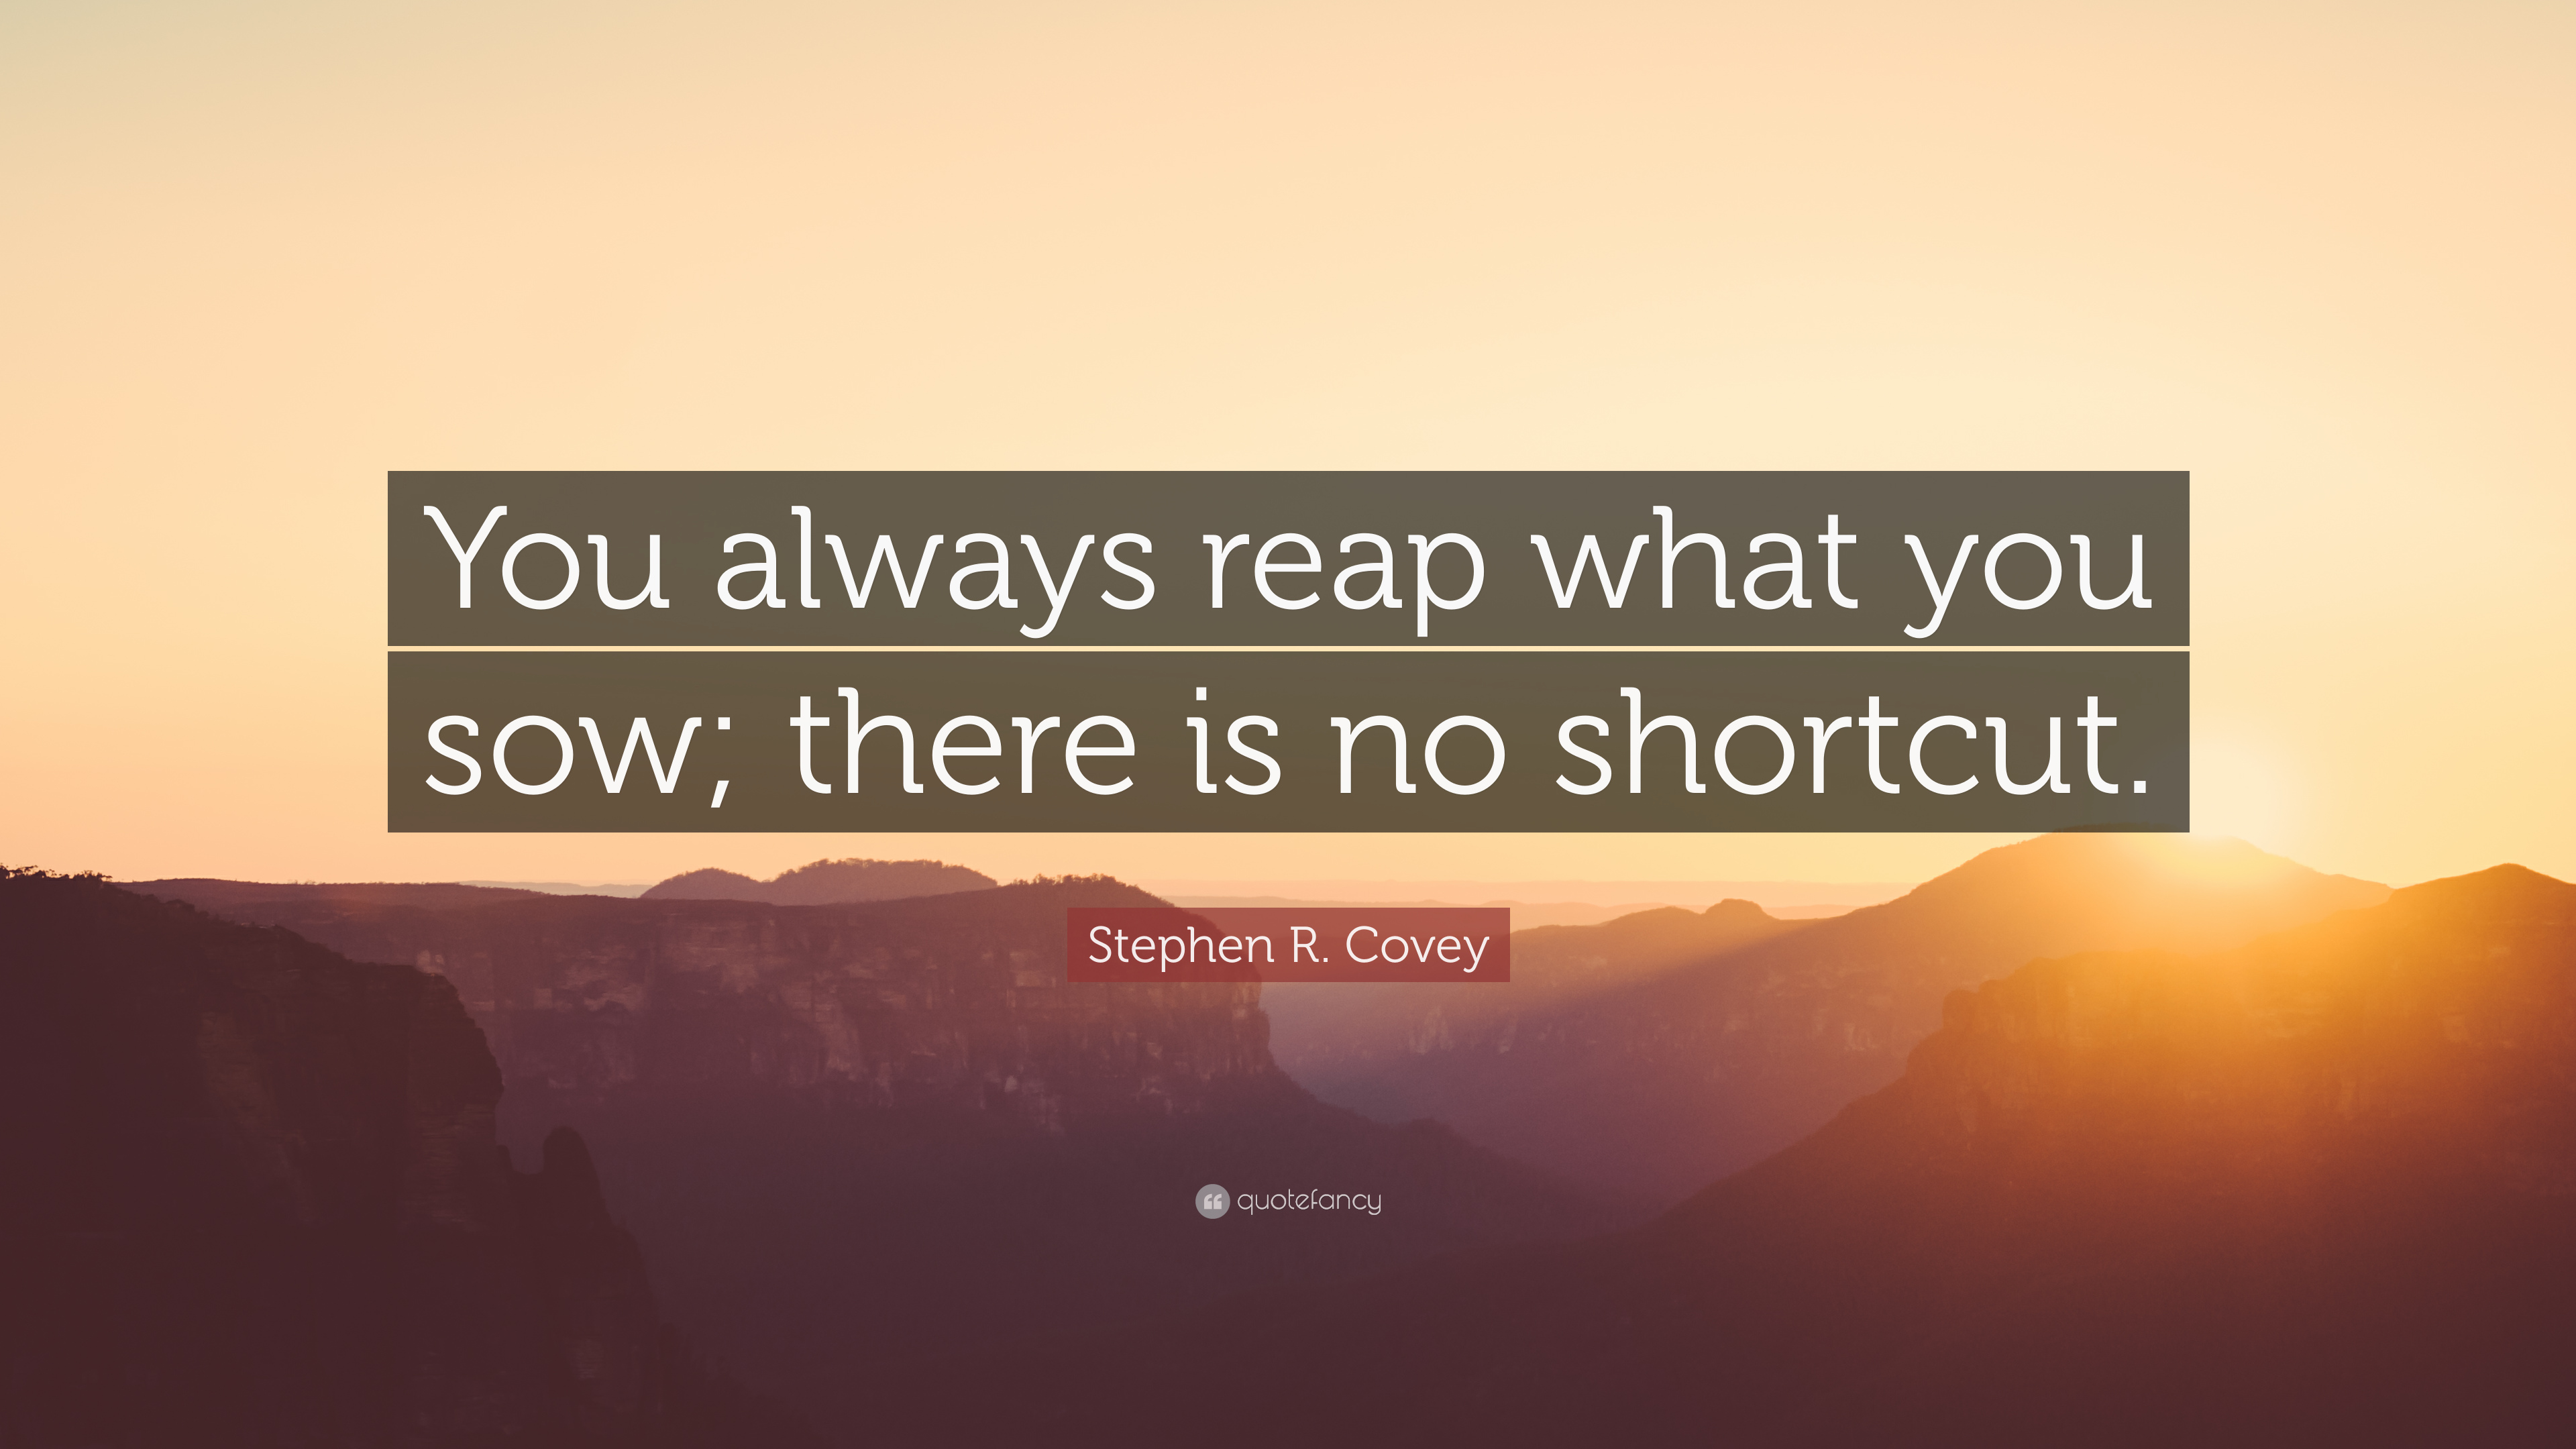 Stephen R Covey Quote You Always Reap What You Sow There Is No